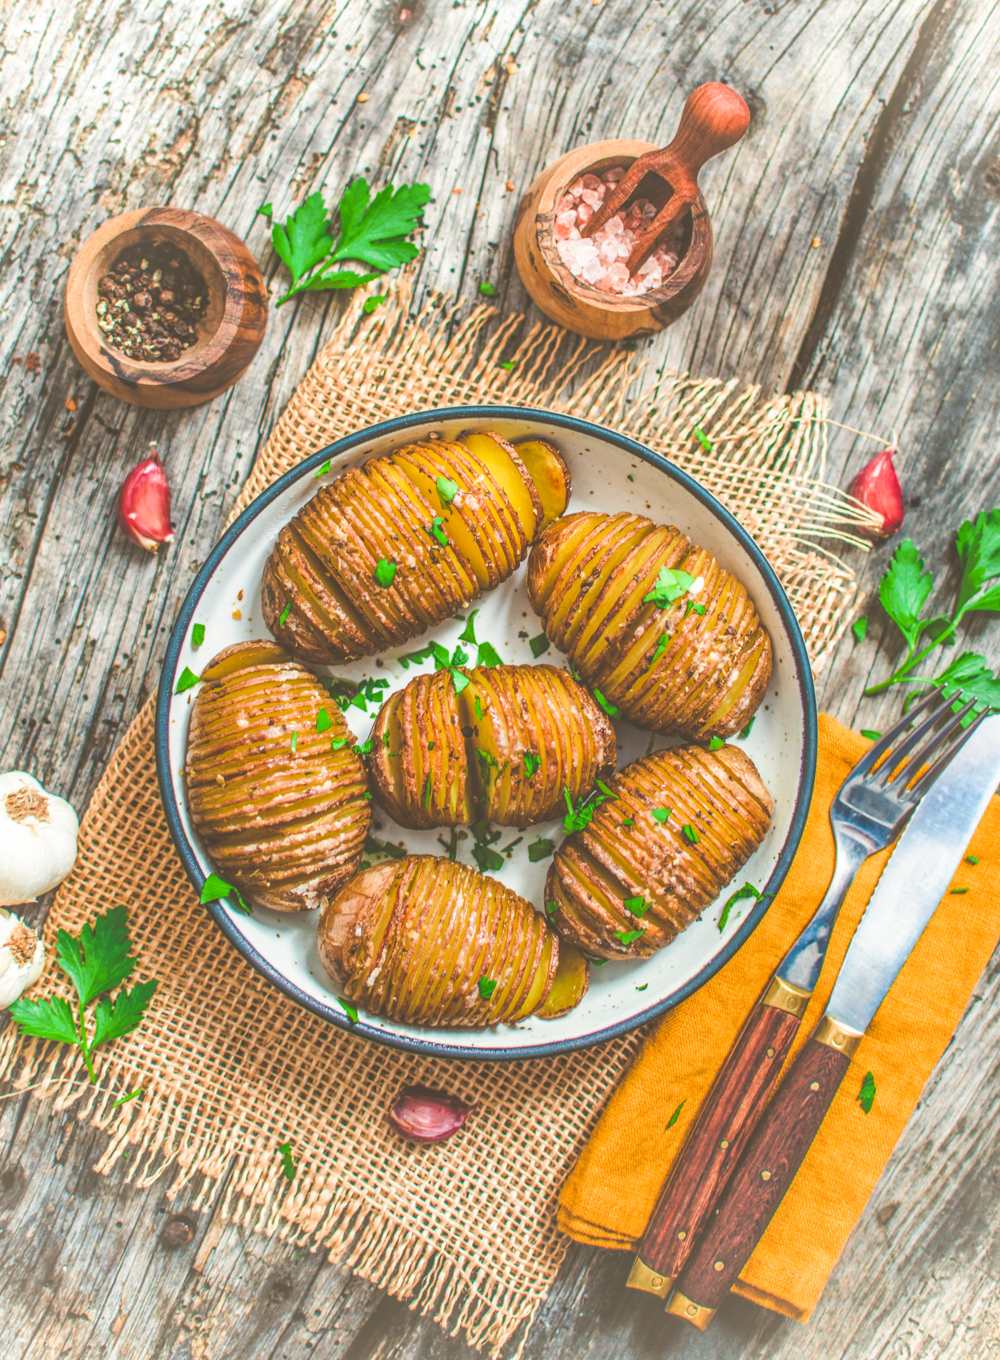 World of Vegan Hasselback Potatoes sprinkled with parsley